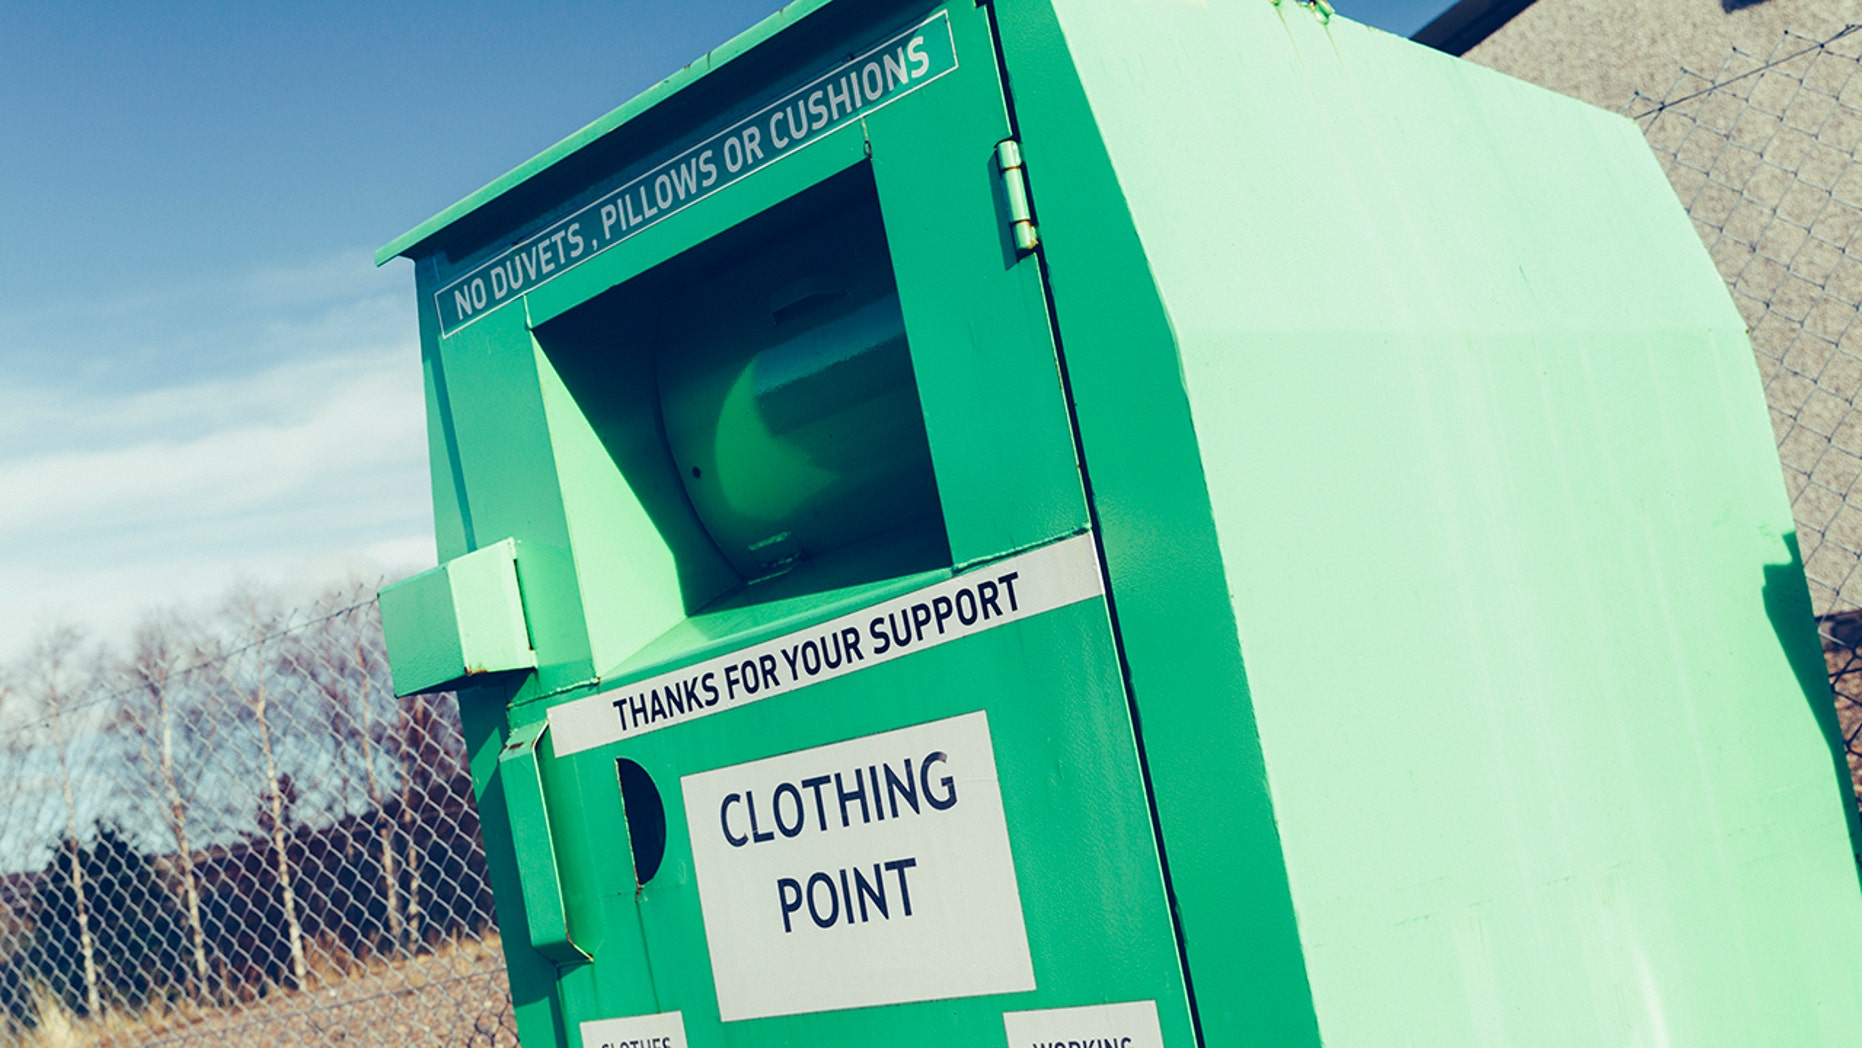 Woman dies after being found unconscious in clothing donation bin